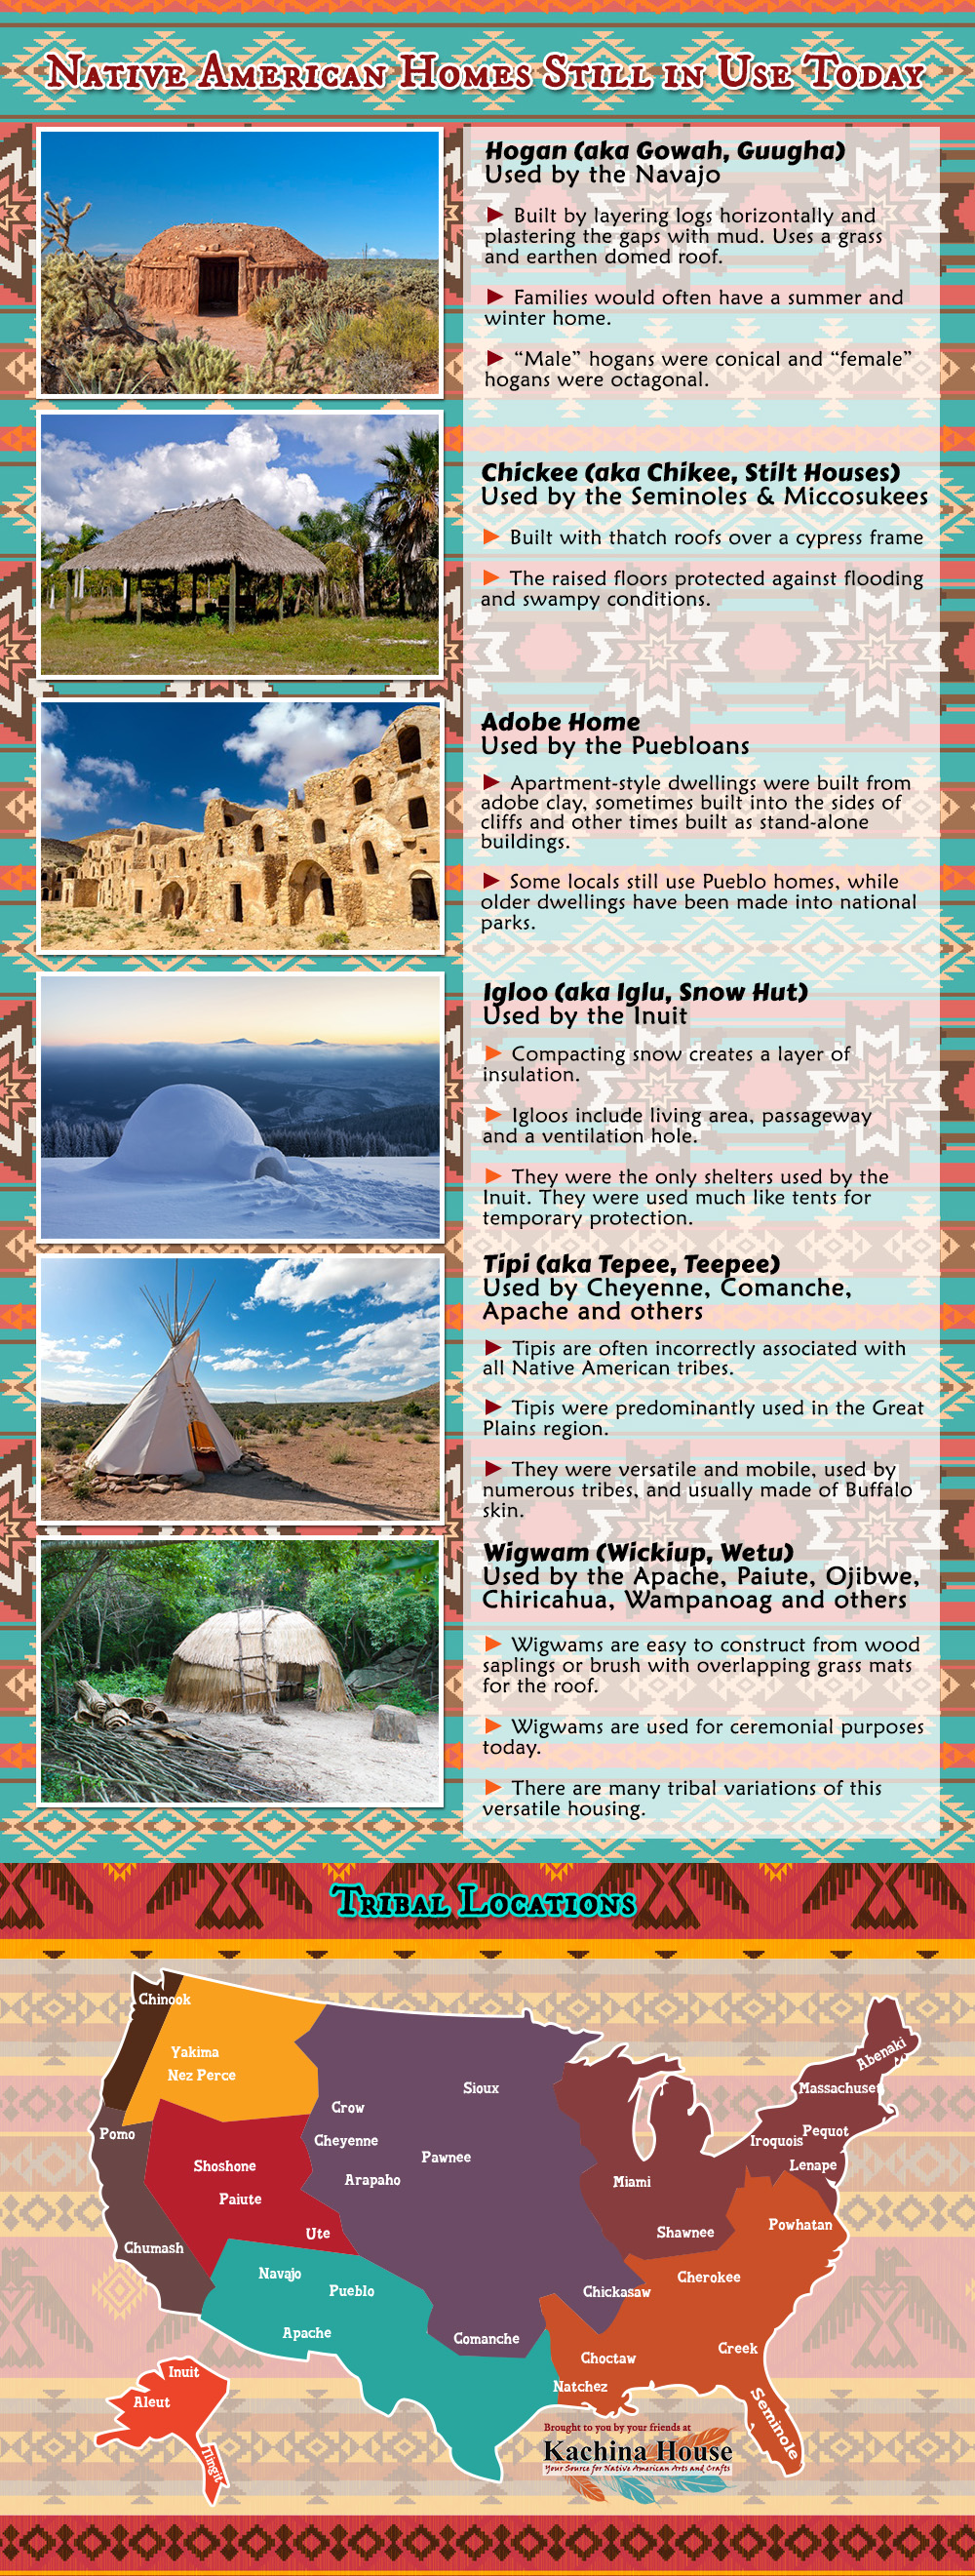 Native American Homes and Tribal Locations Infographic